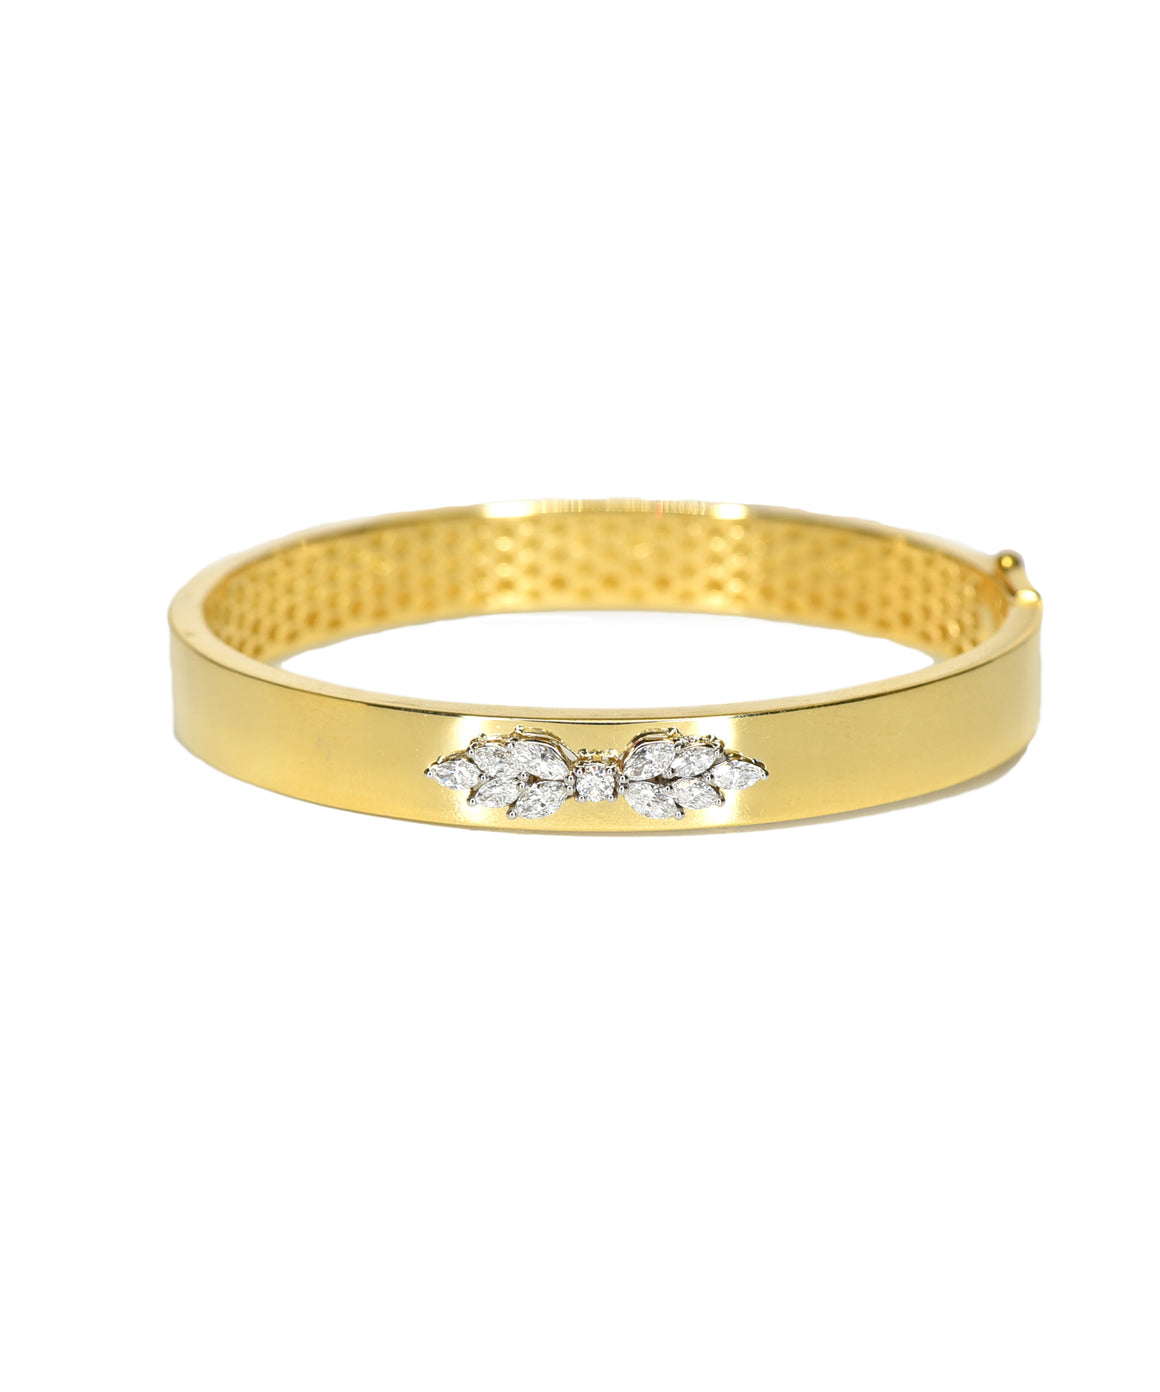 Bangle with marquis diamonds